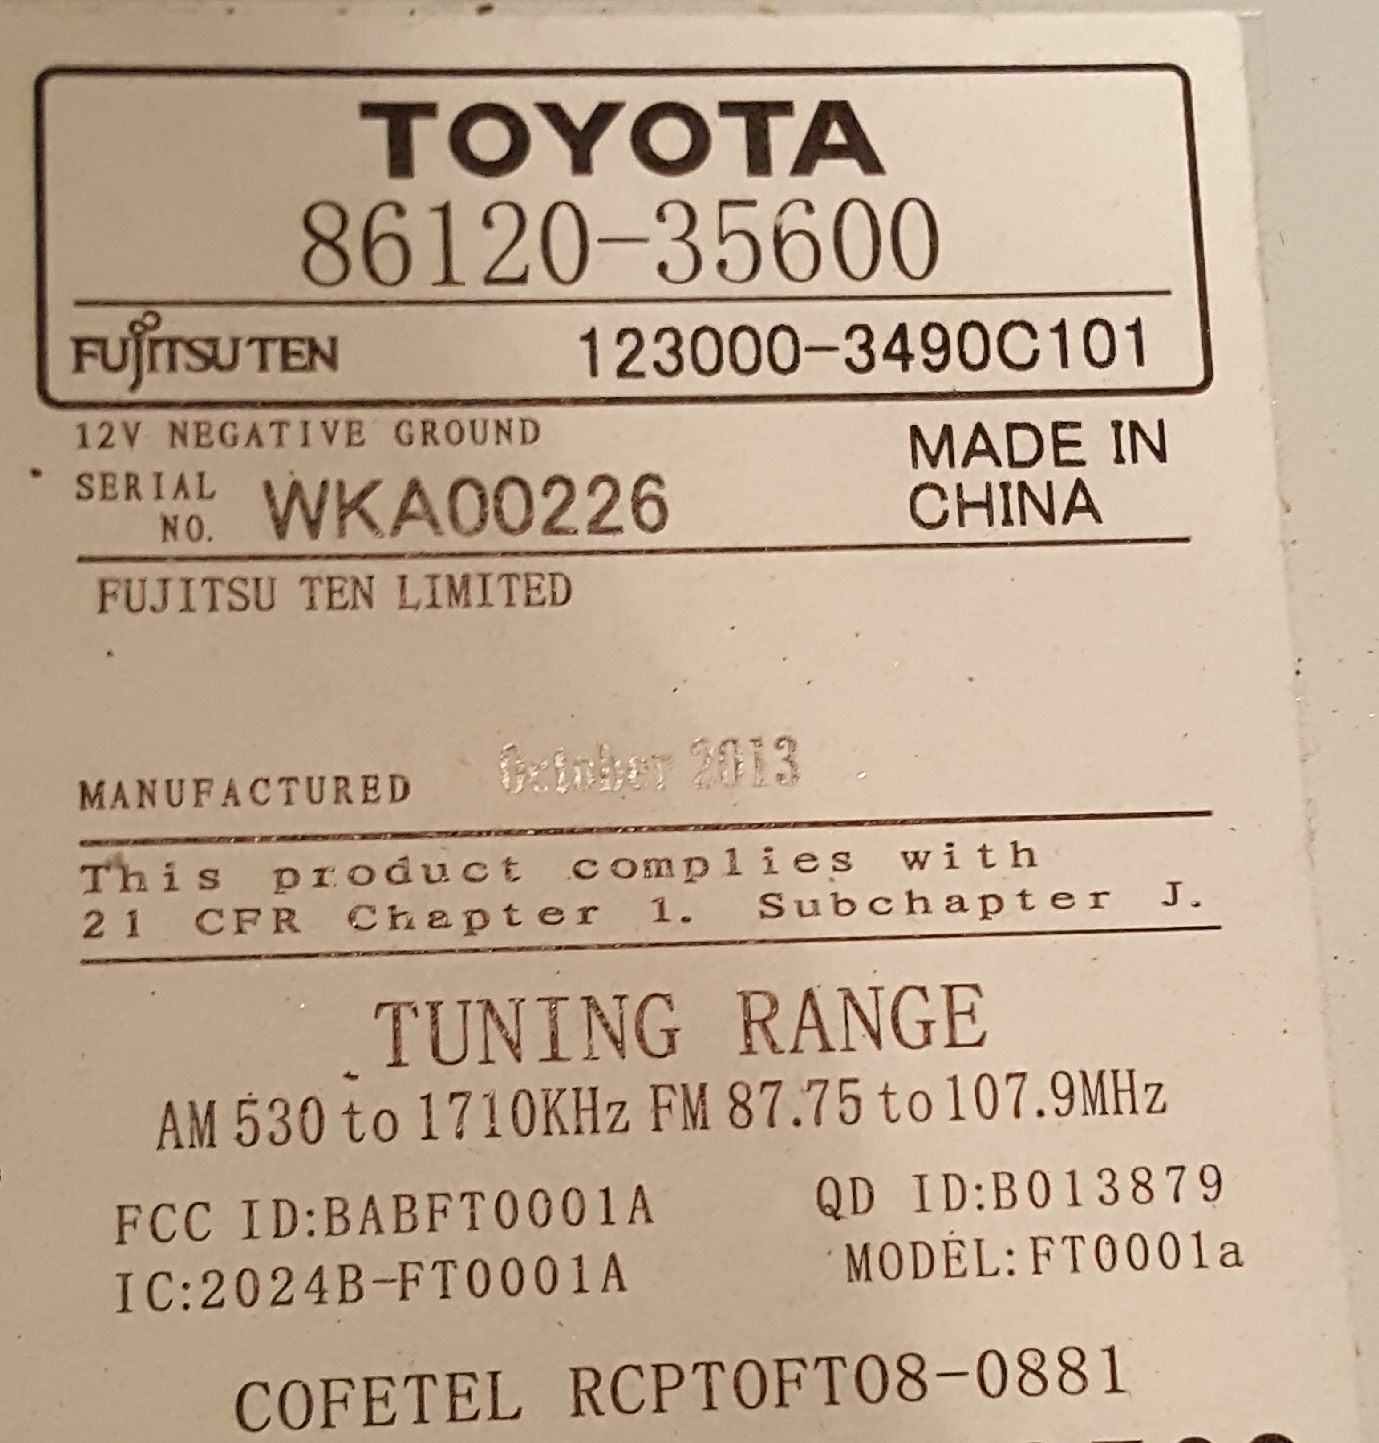 962905d1511469418 head unit stereo wiring diagram 14 help 20171123_141019 head unit stereo wiring diagram for '14 help! toyota fj toyota 86120 wiring diagram at n-0.co